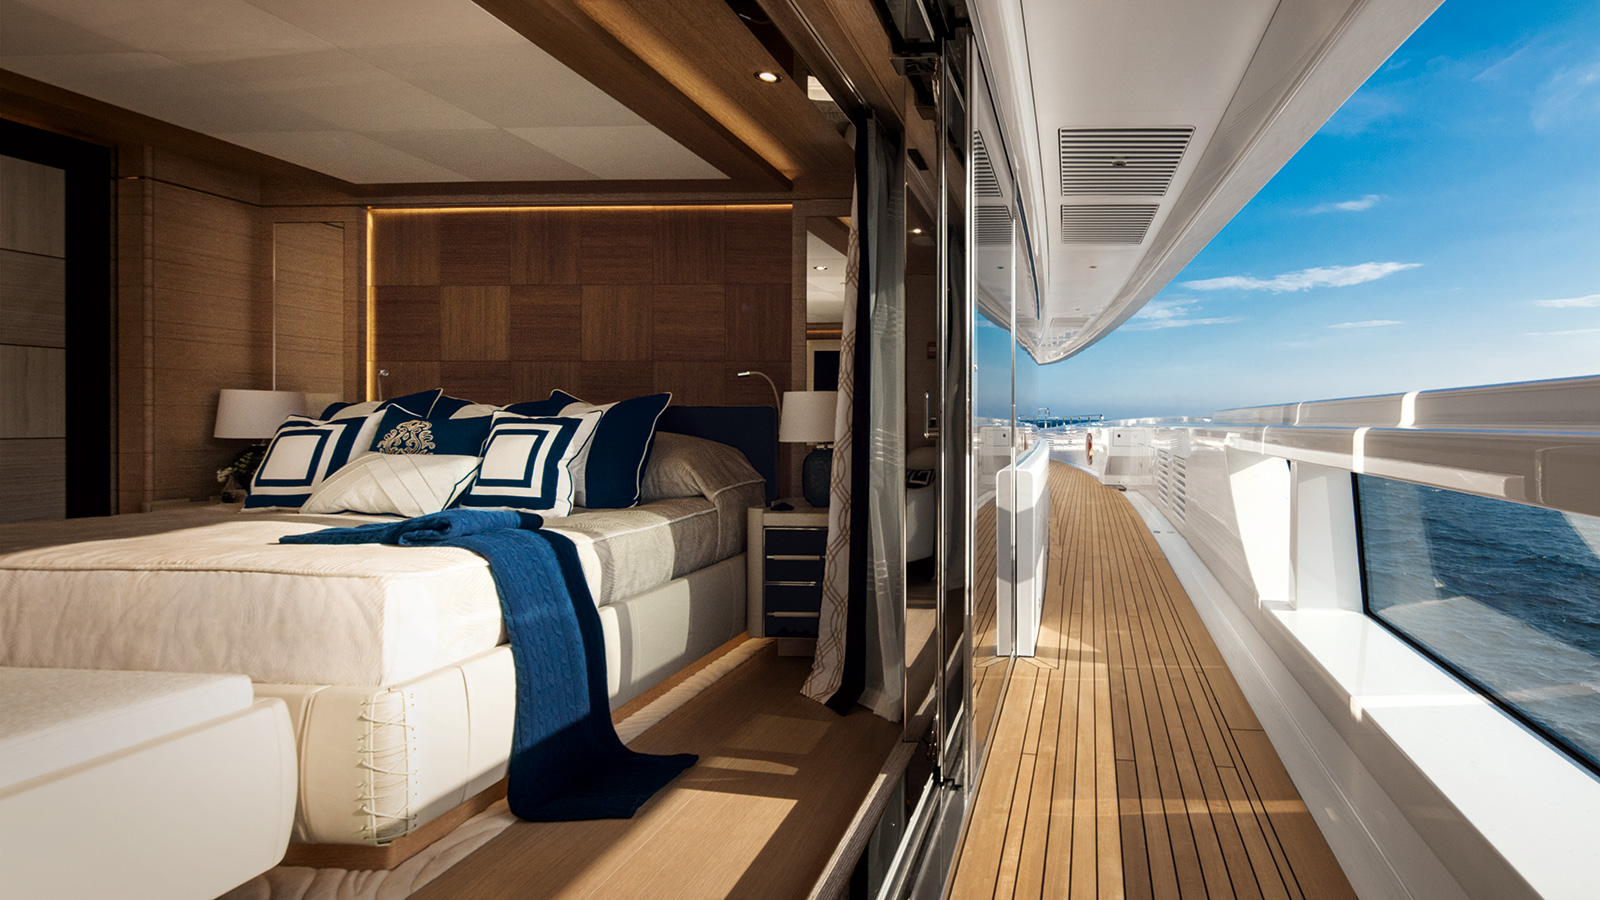 interior-detail-of-the-crn-superyacht-cloud-9-credit-maurizio-paradisi